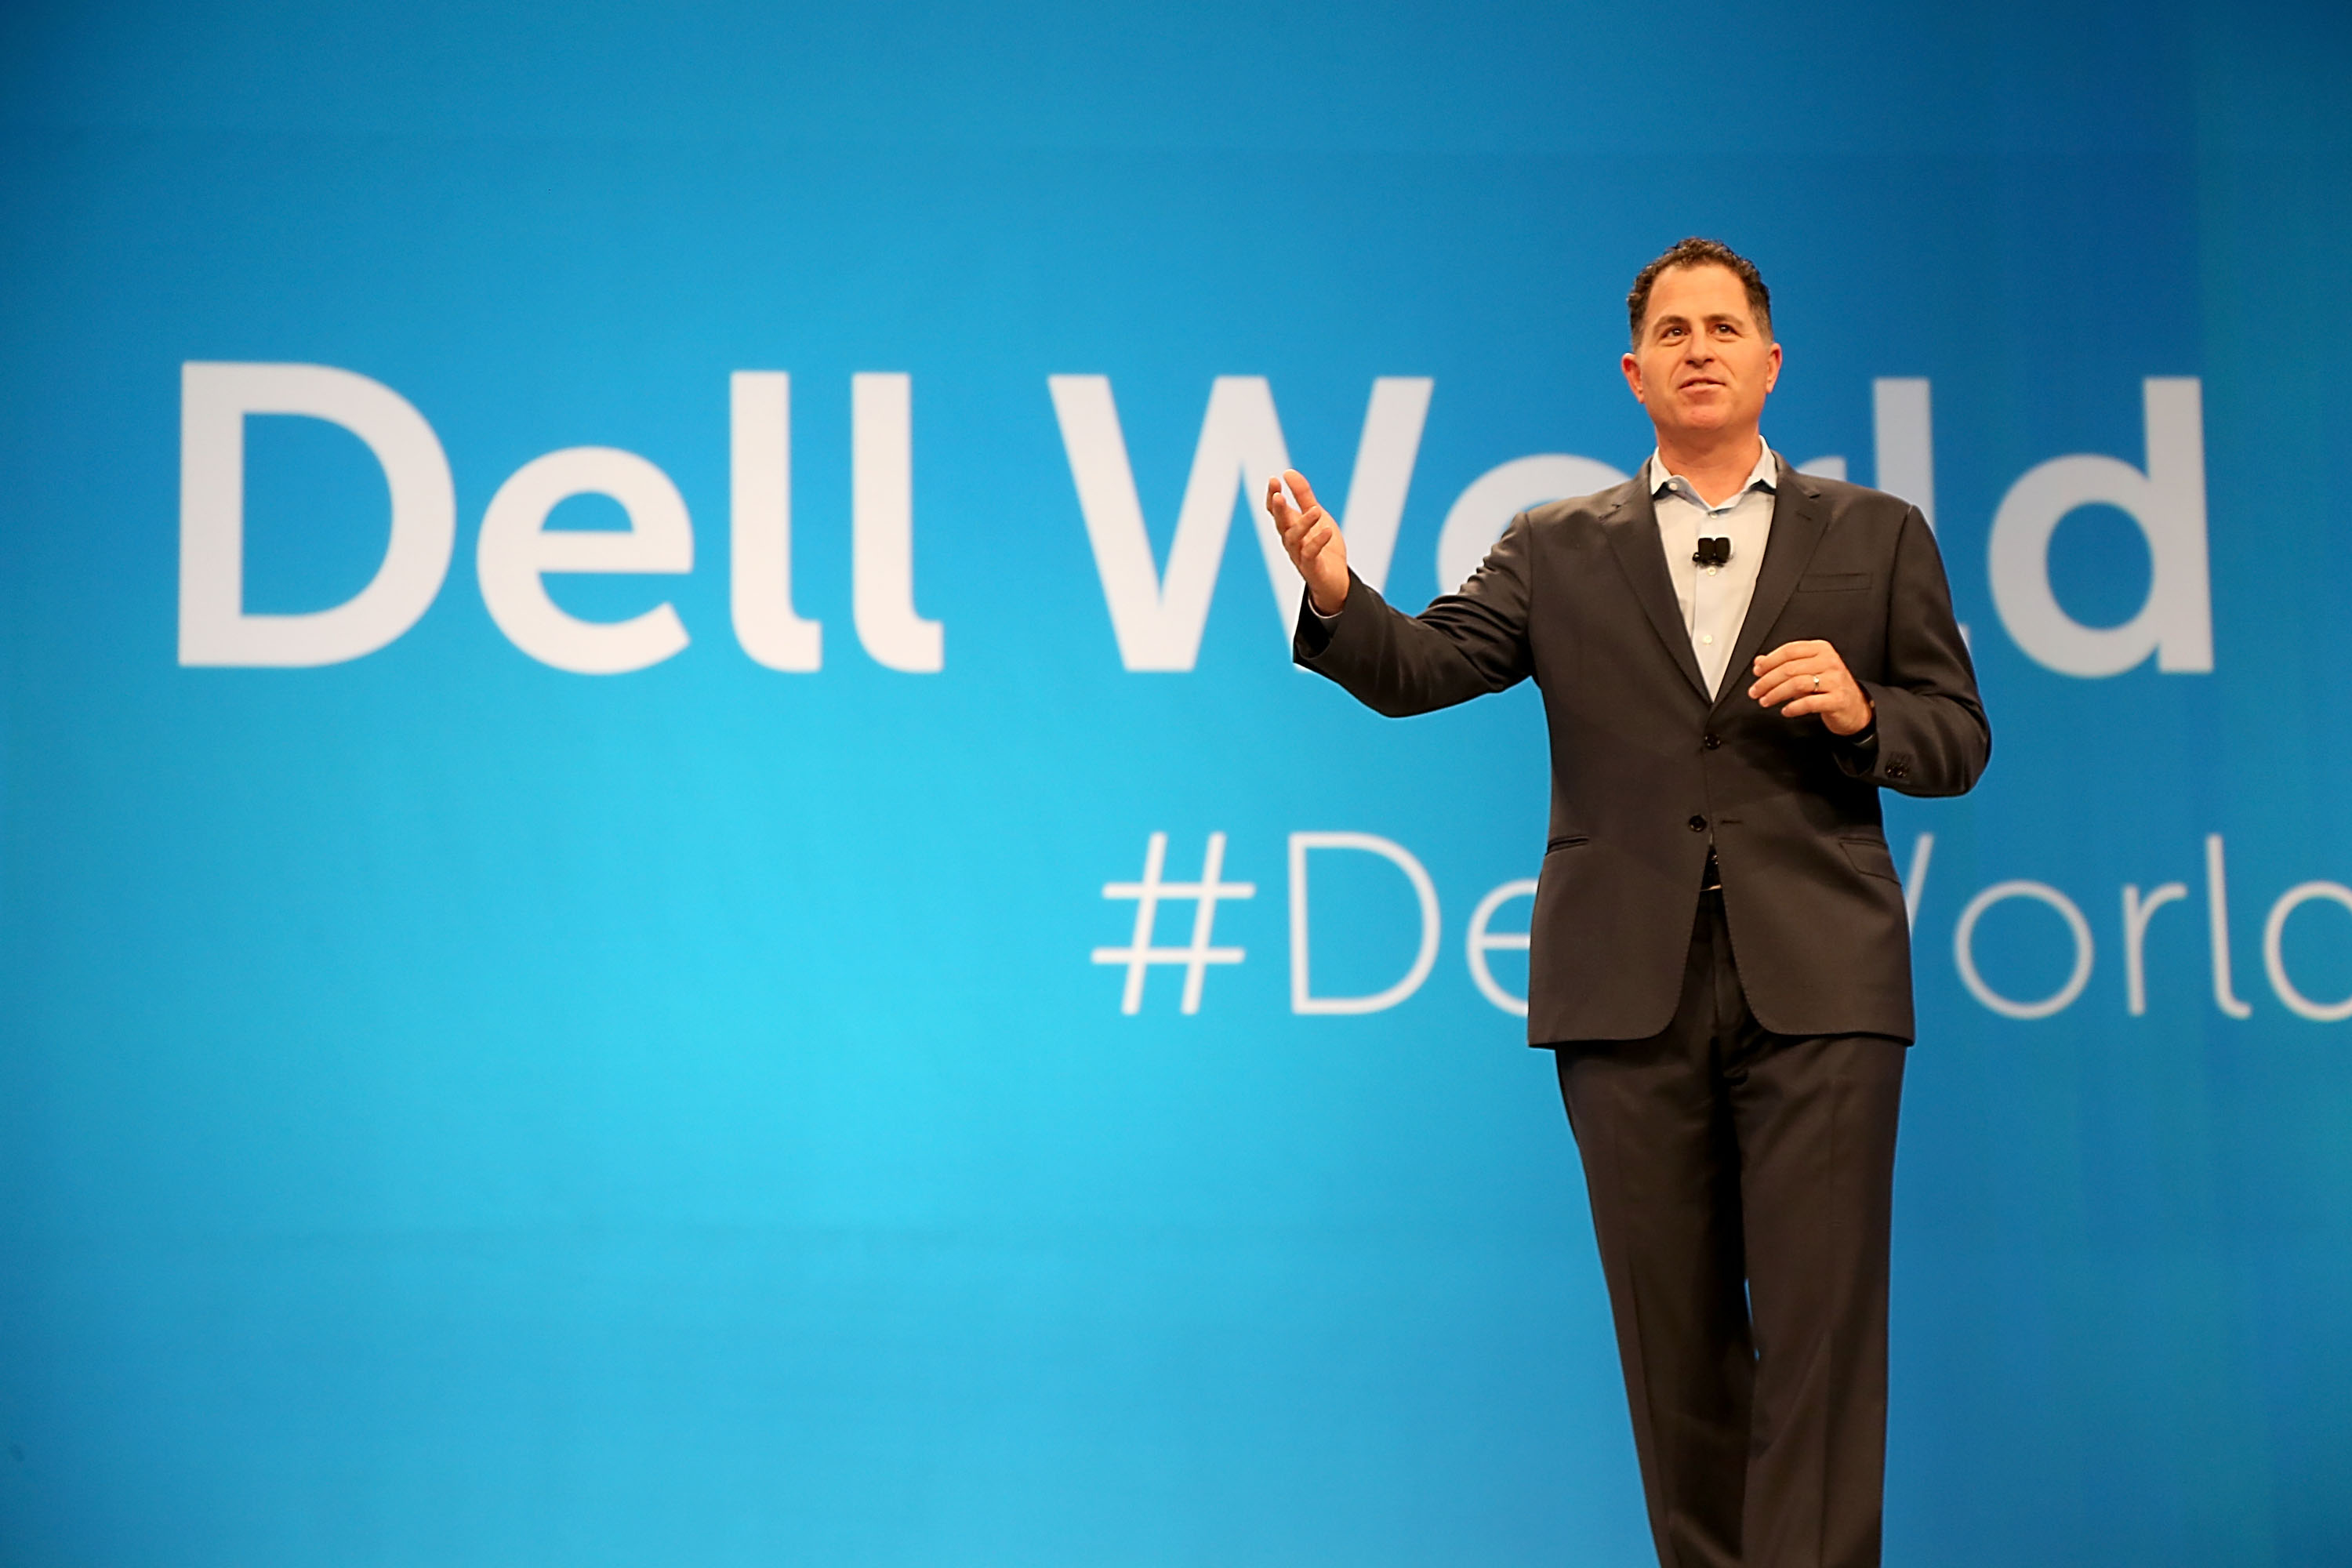 Michael Dell gives the keynote address to Dell employees to kick off Dell World 2014 at the Austin Convention Center on November 5, 2014 in Austin, Texas.